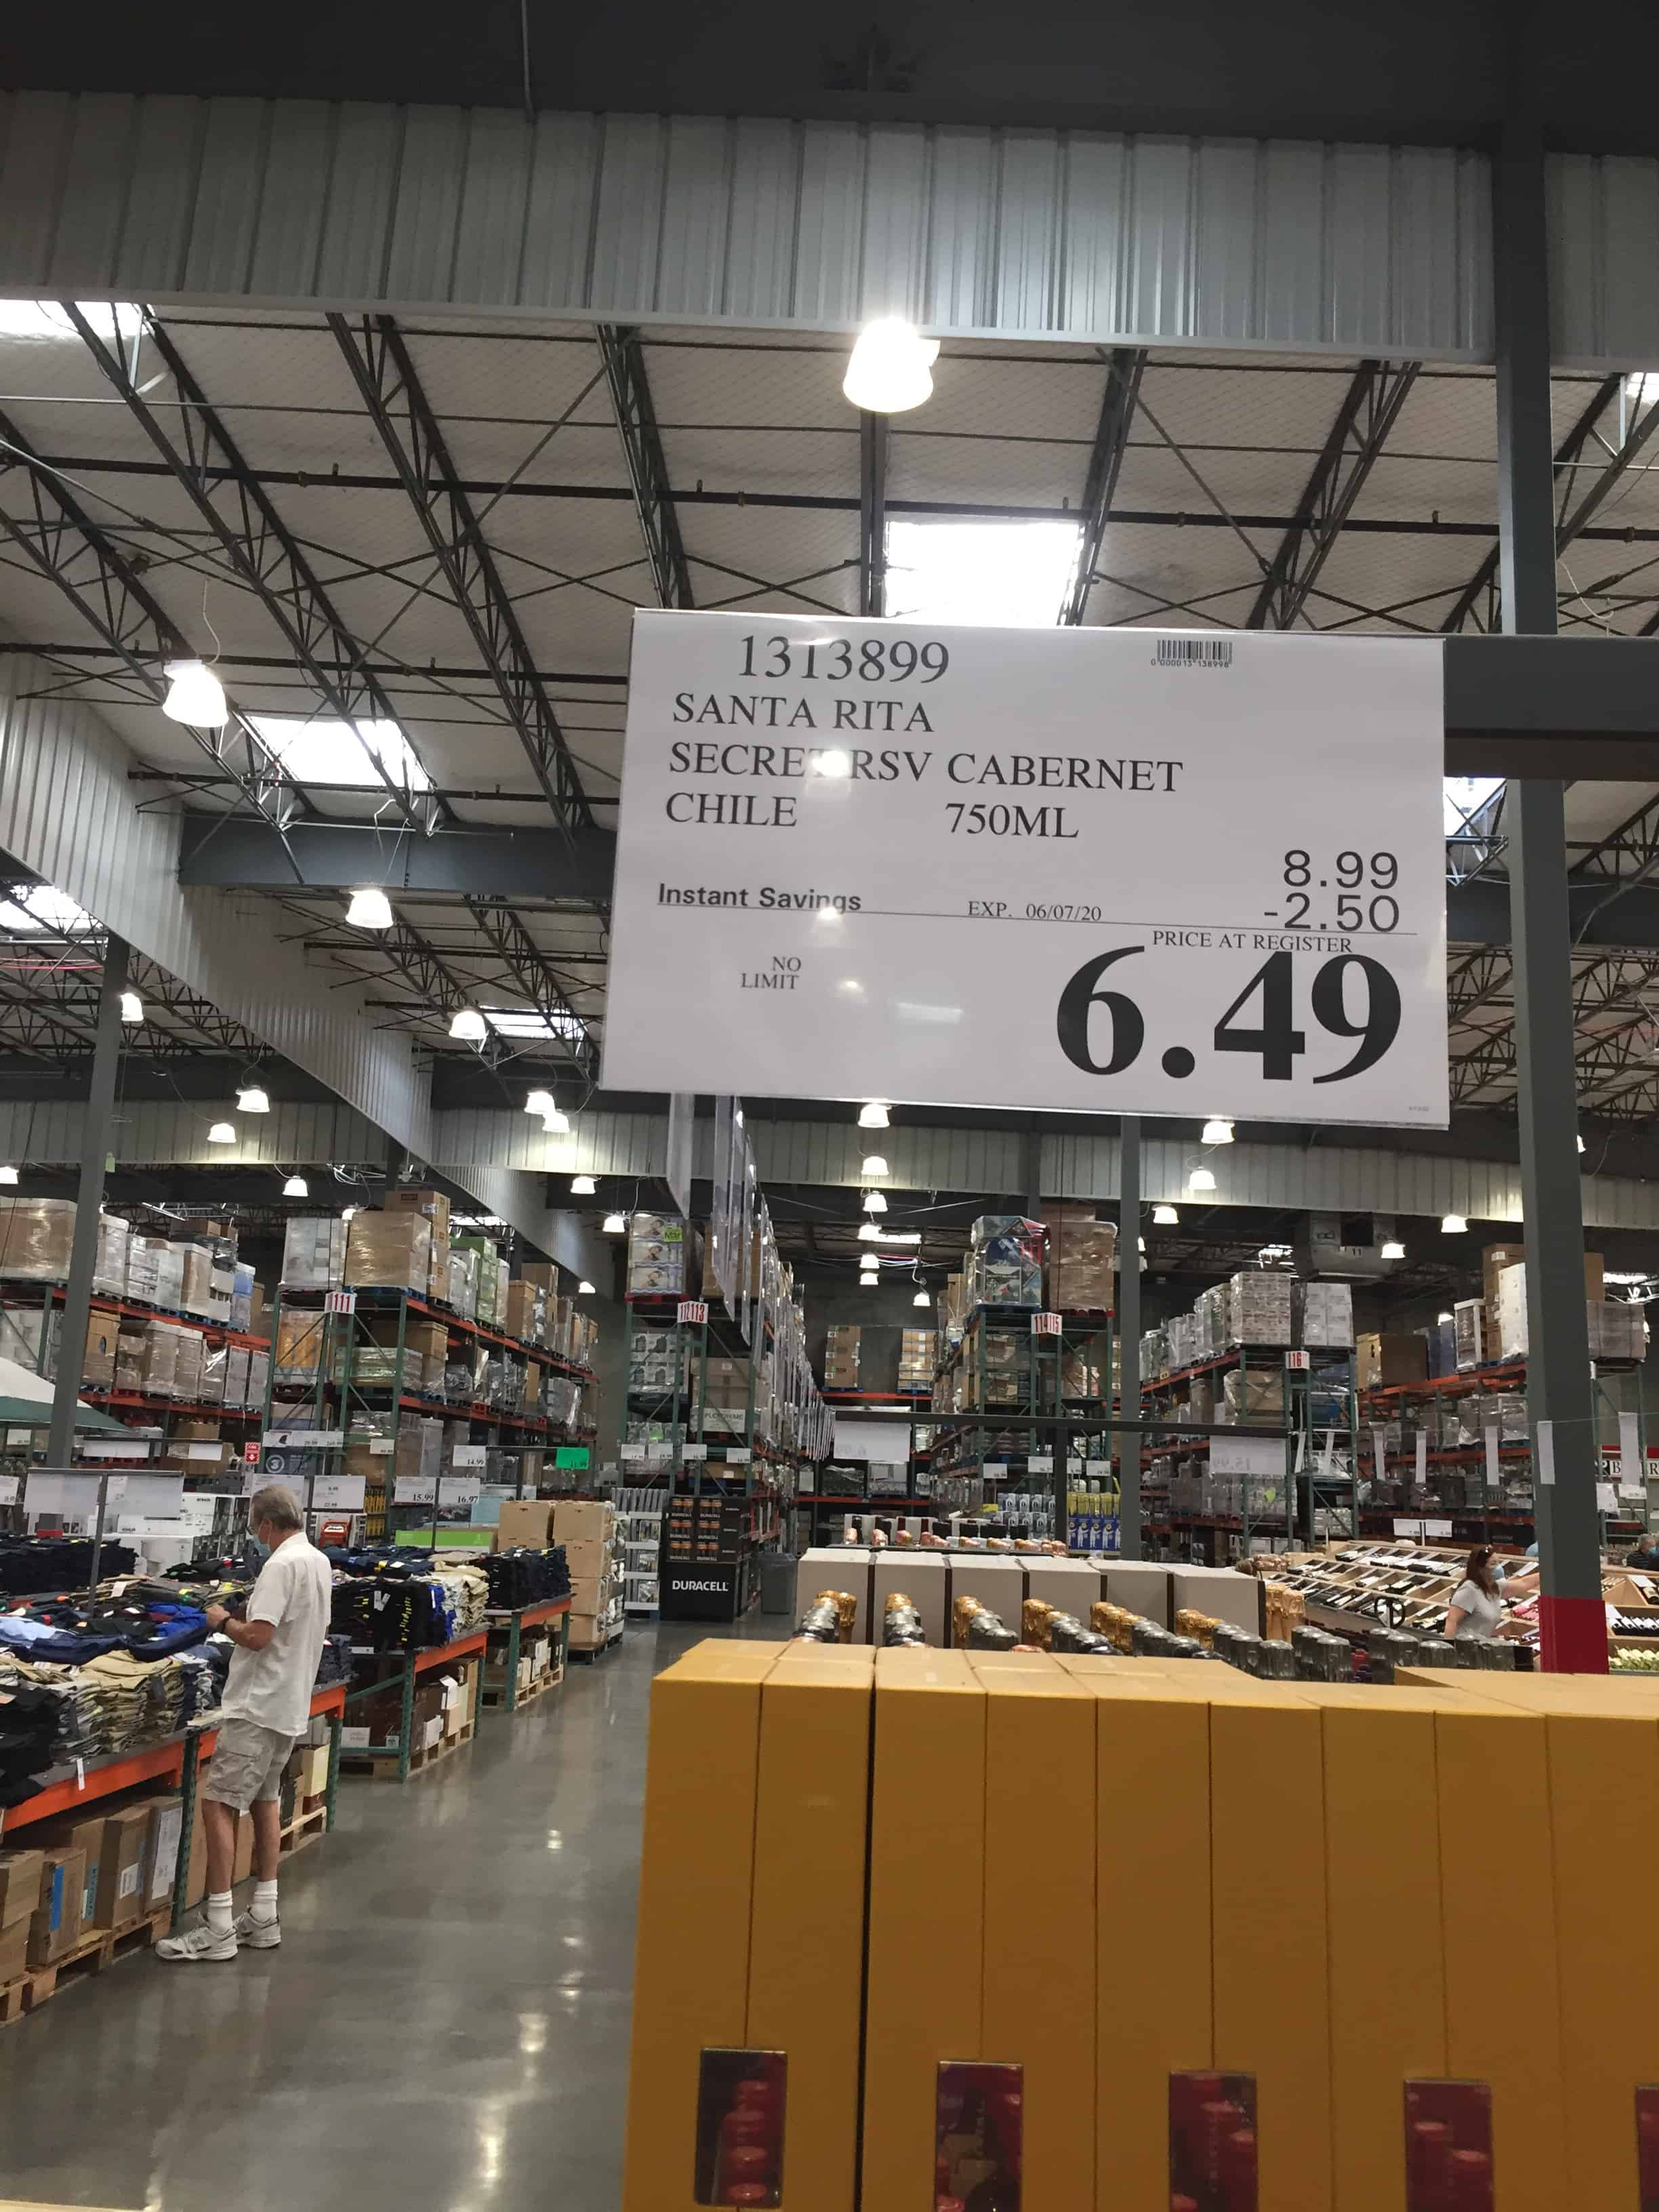 Costco sign showing discounted price of $6.49